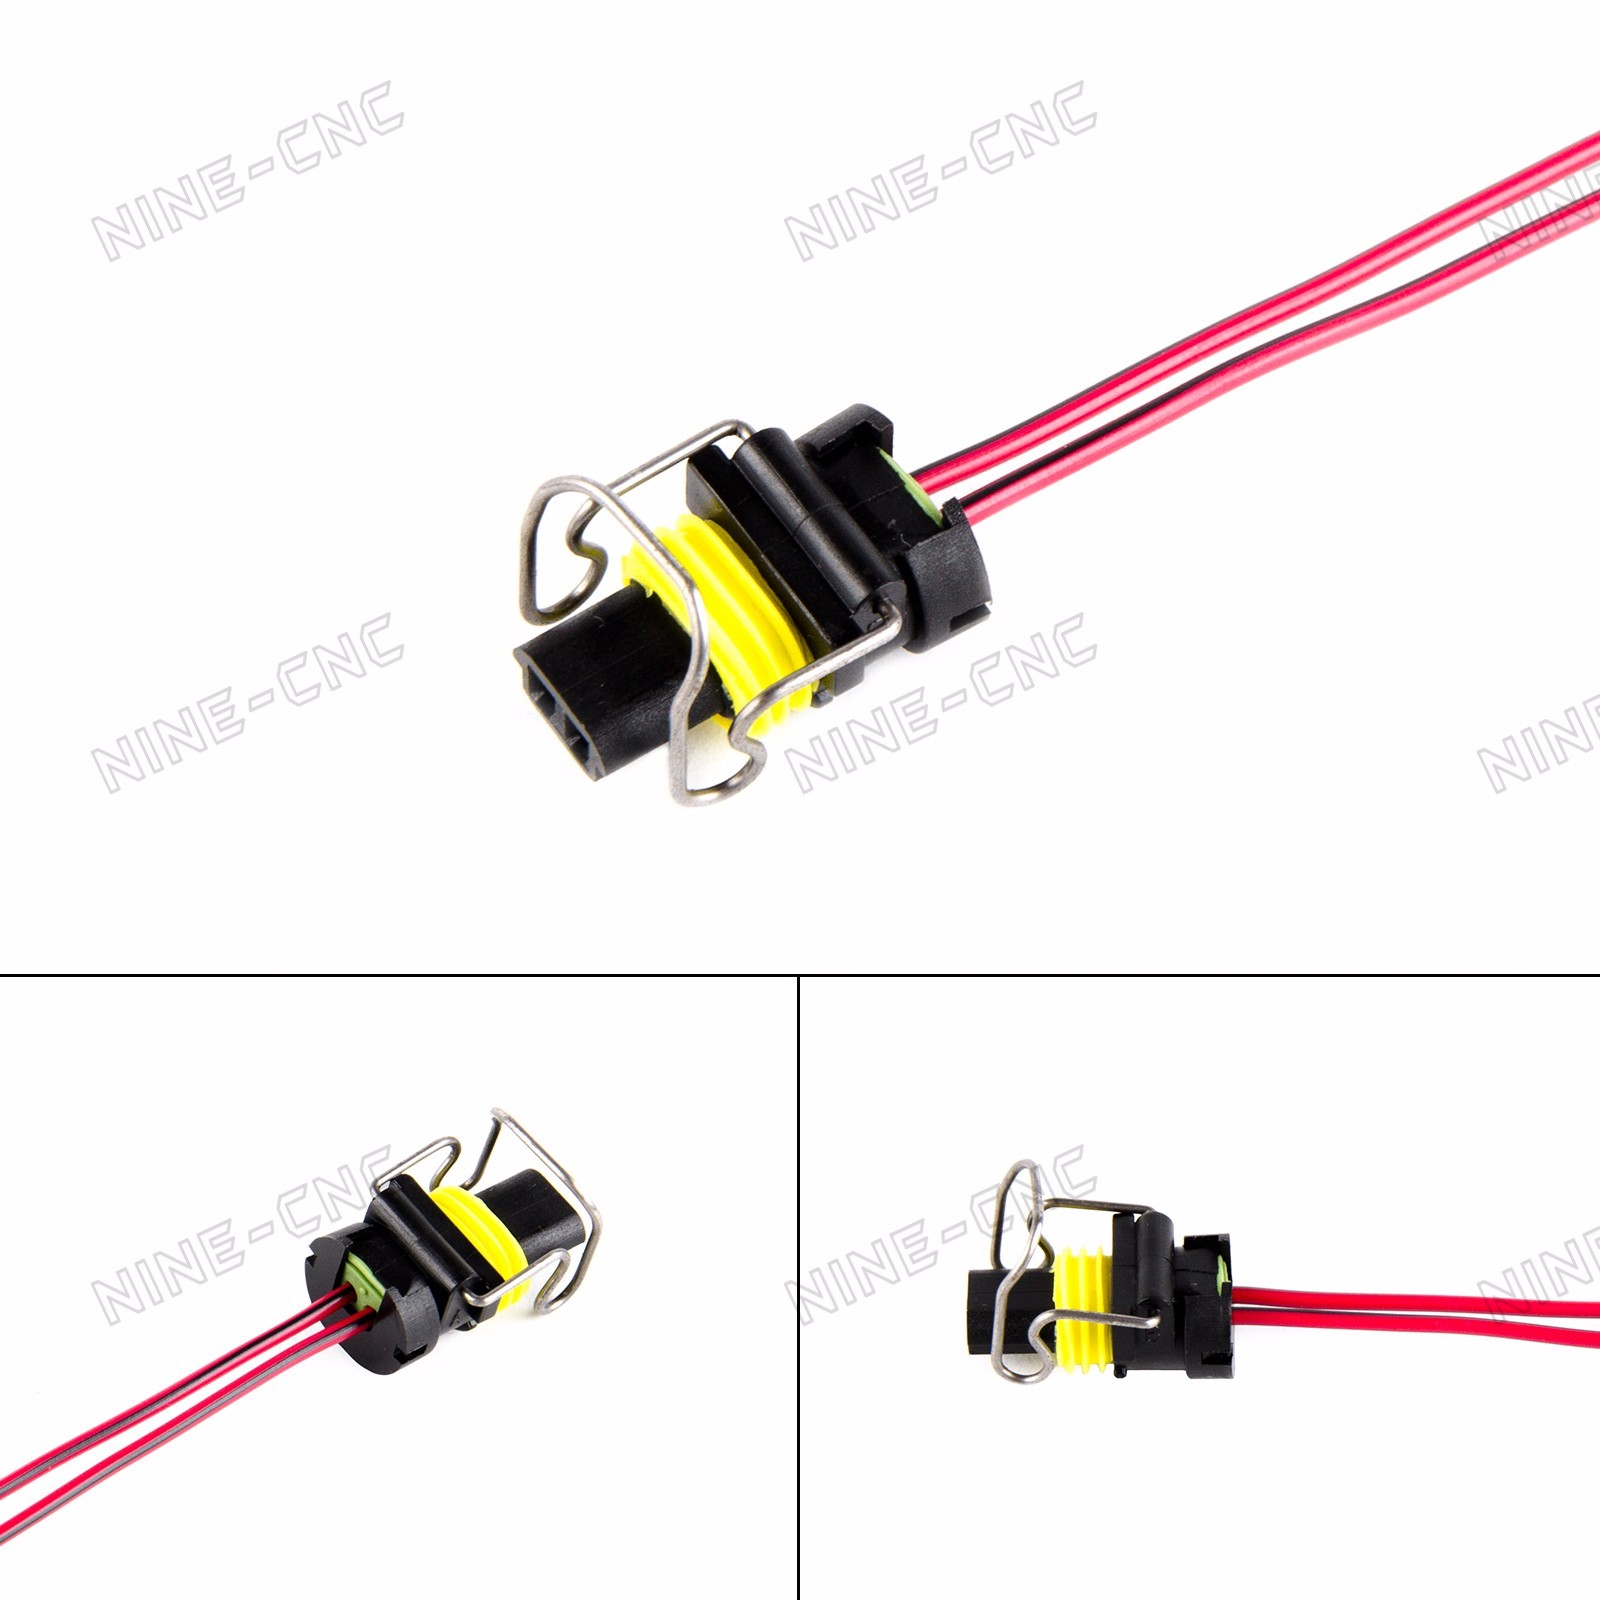 Details about Turbo VGT Solenoid Injection IPR Pigtail For Ford Powerstroke on